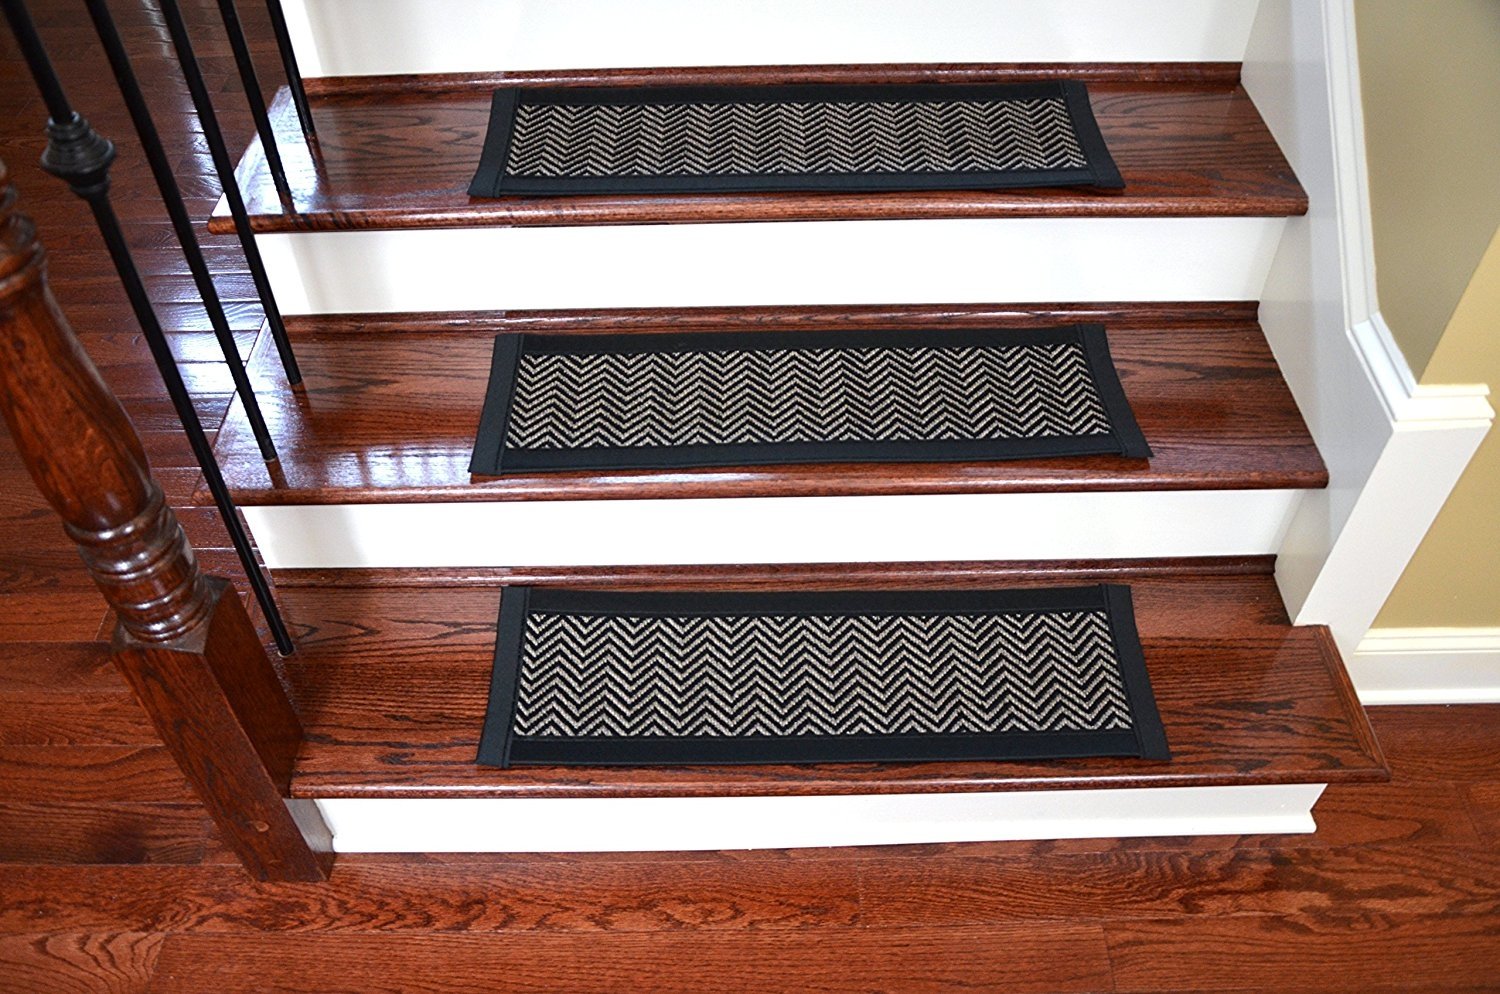 Amazon Dean Hatteras Flatweave Indooroutdoor Carpet Stair Pertaining To Indoor Outdoor Carpet Stair Treads (View 12 of 15)